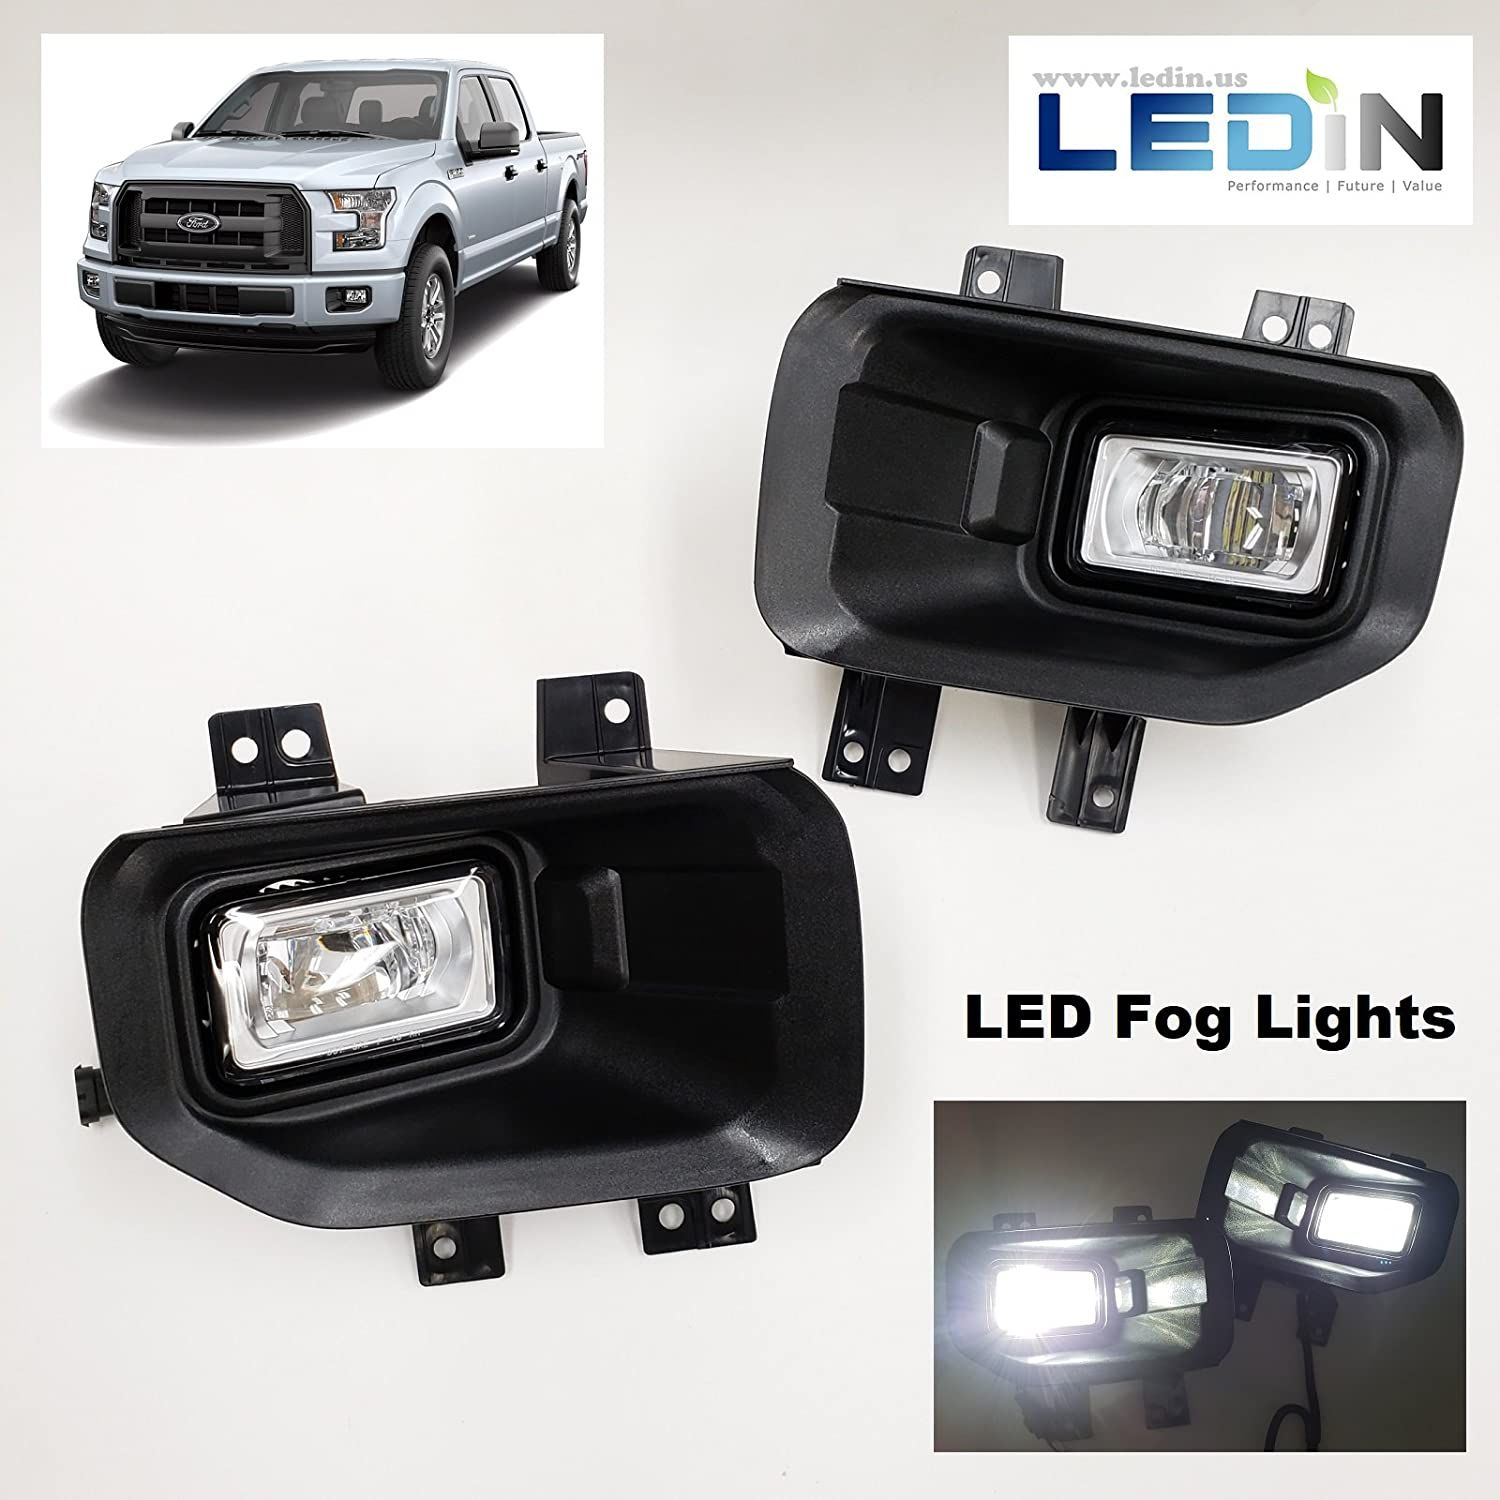 Ledin For 2015 2017 Ford F150 F 150 Front Bumper Clear Led Fog Lights With Bezel Wires Switch Want Additional Info Cli Led Fog Lights Wire Switch Ford F150